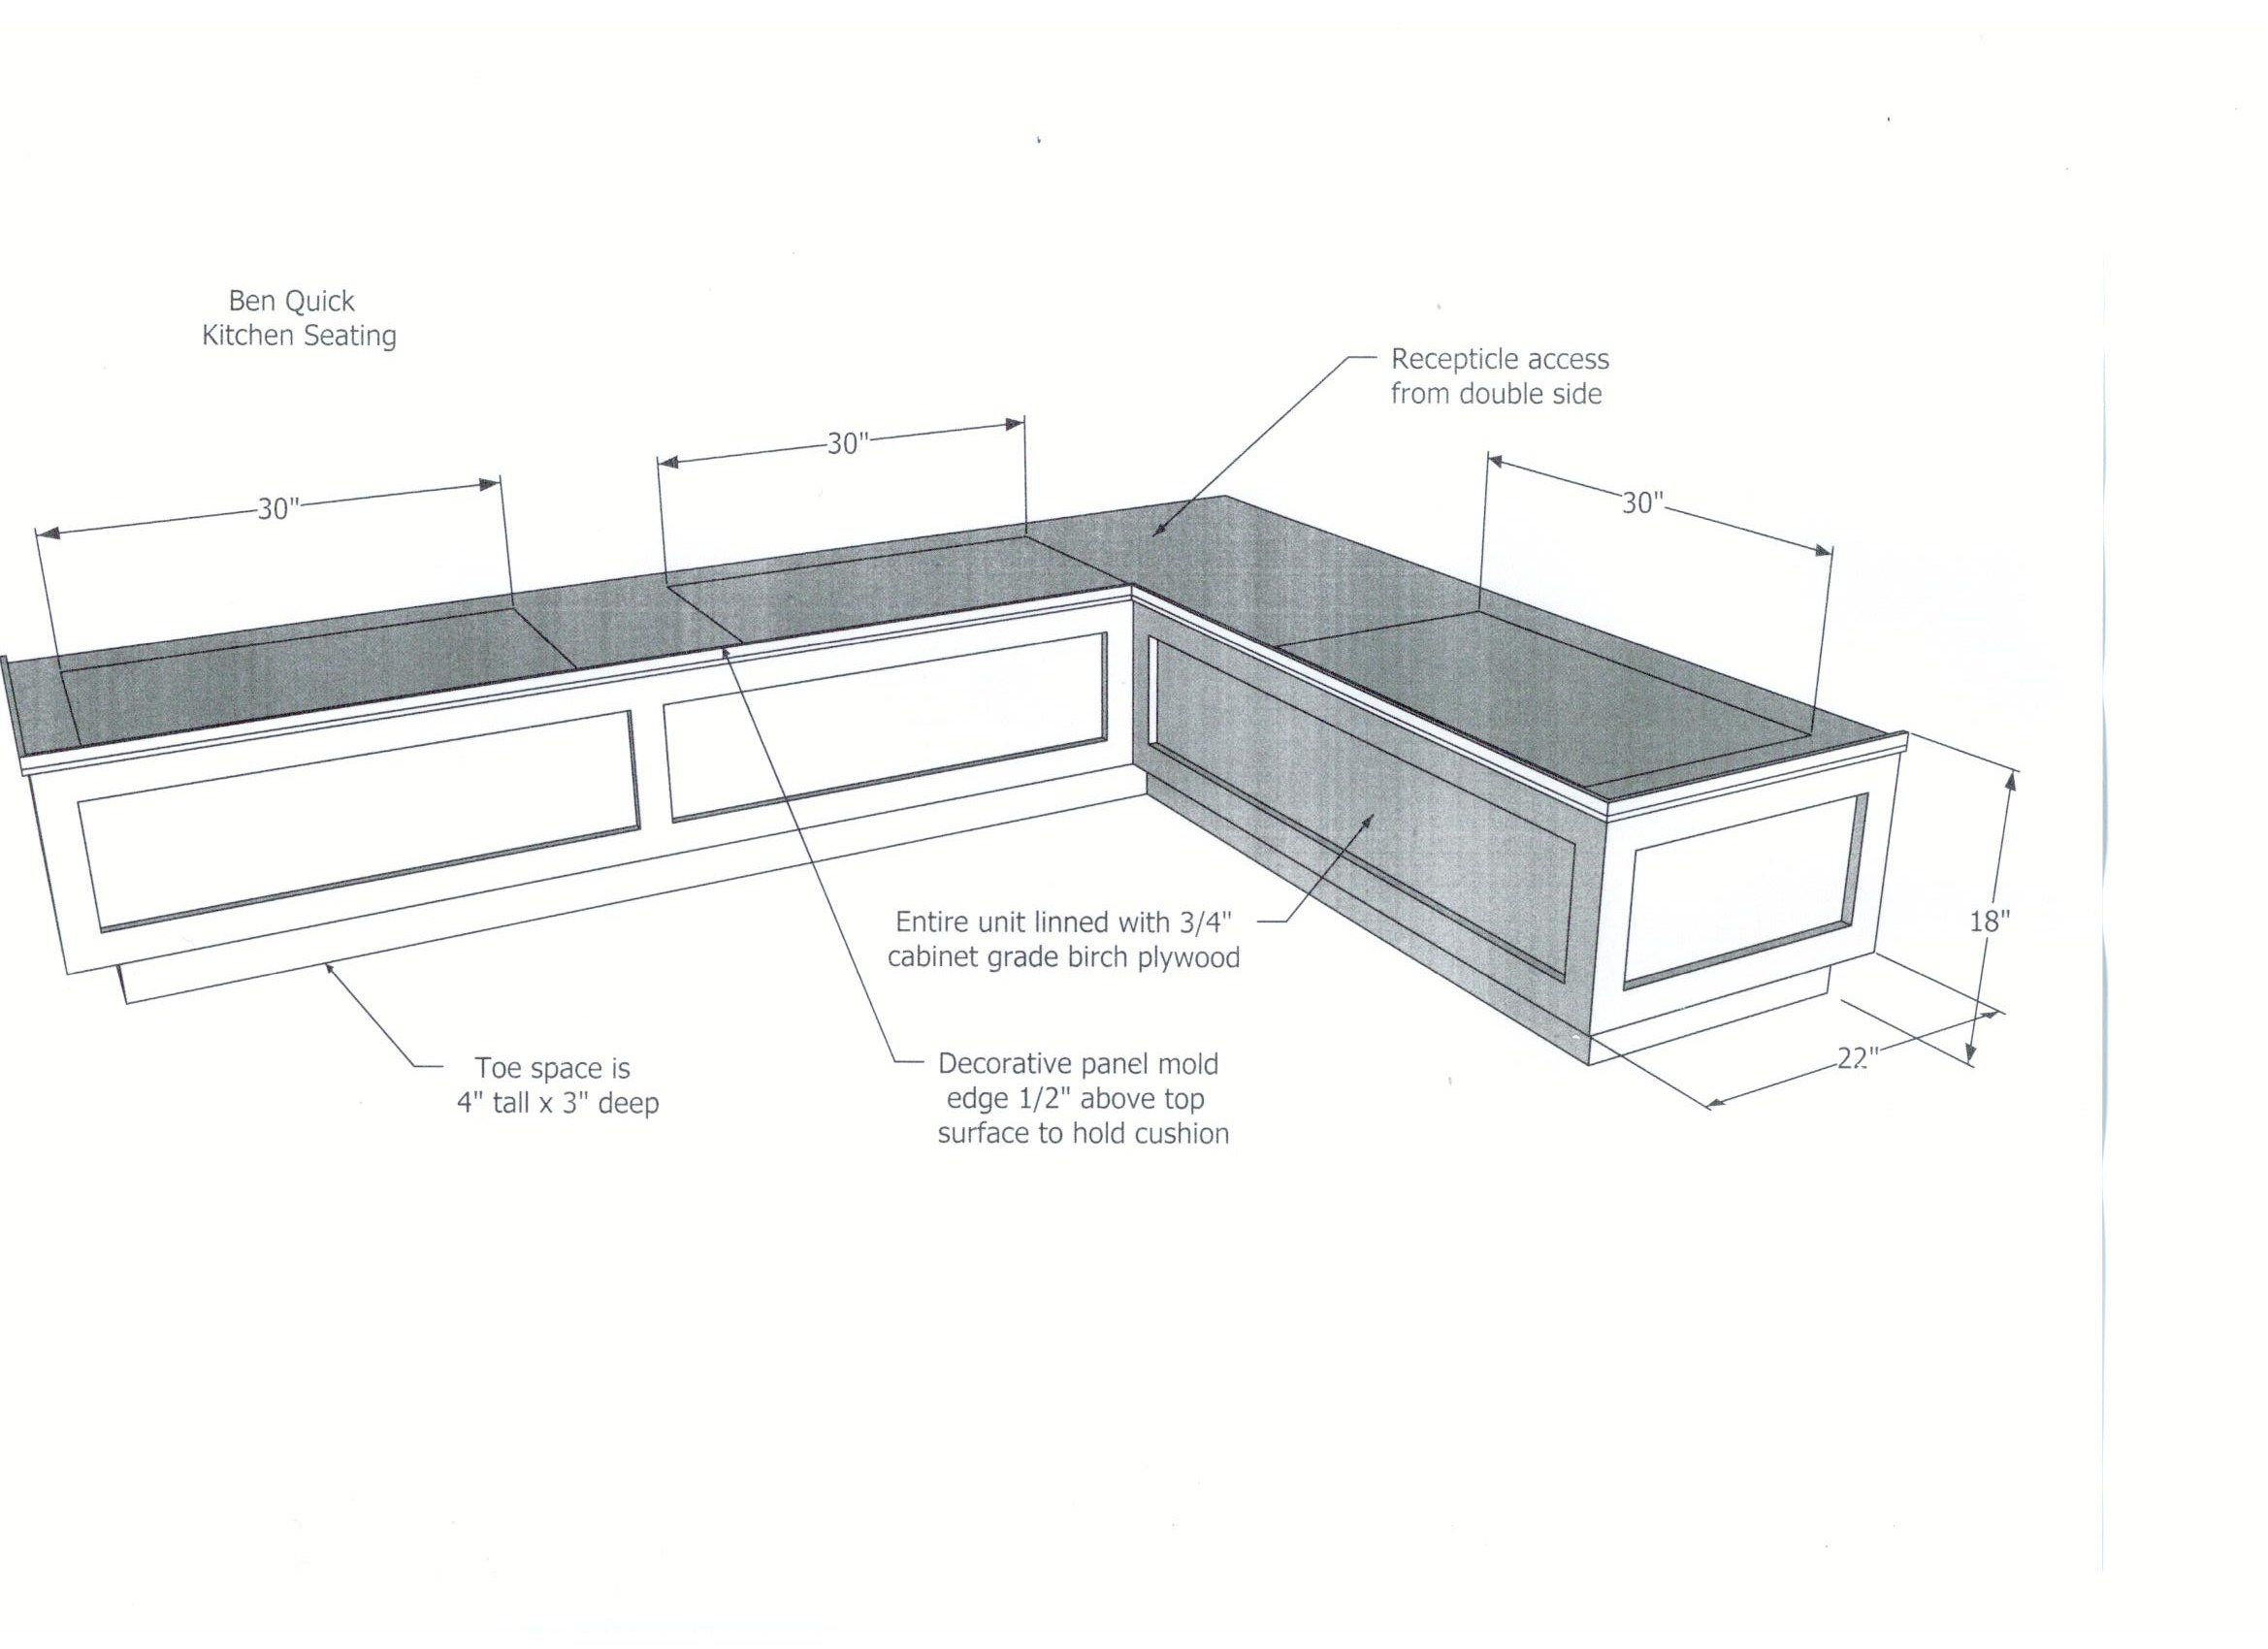 Diy Kitchen Bench With Storage Oil Rubbed Bronze Lighting Wood Breakfast Nook Dimensions Plans